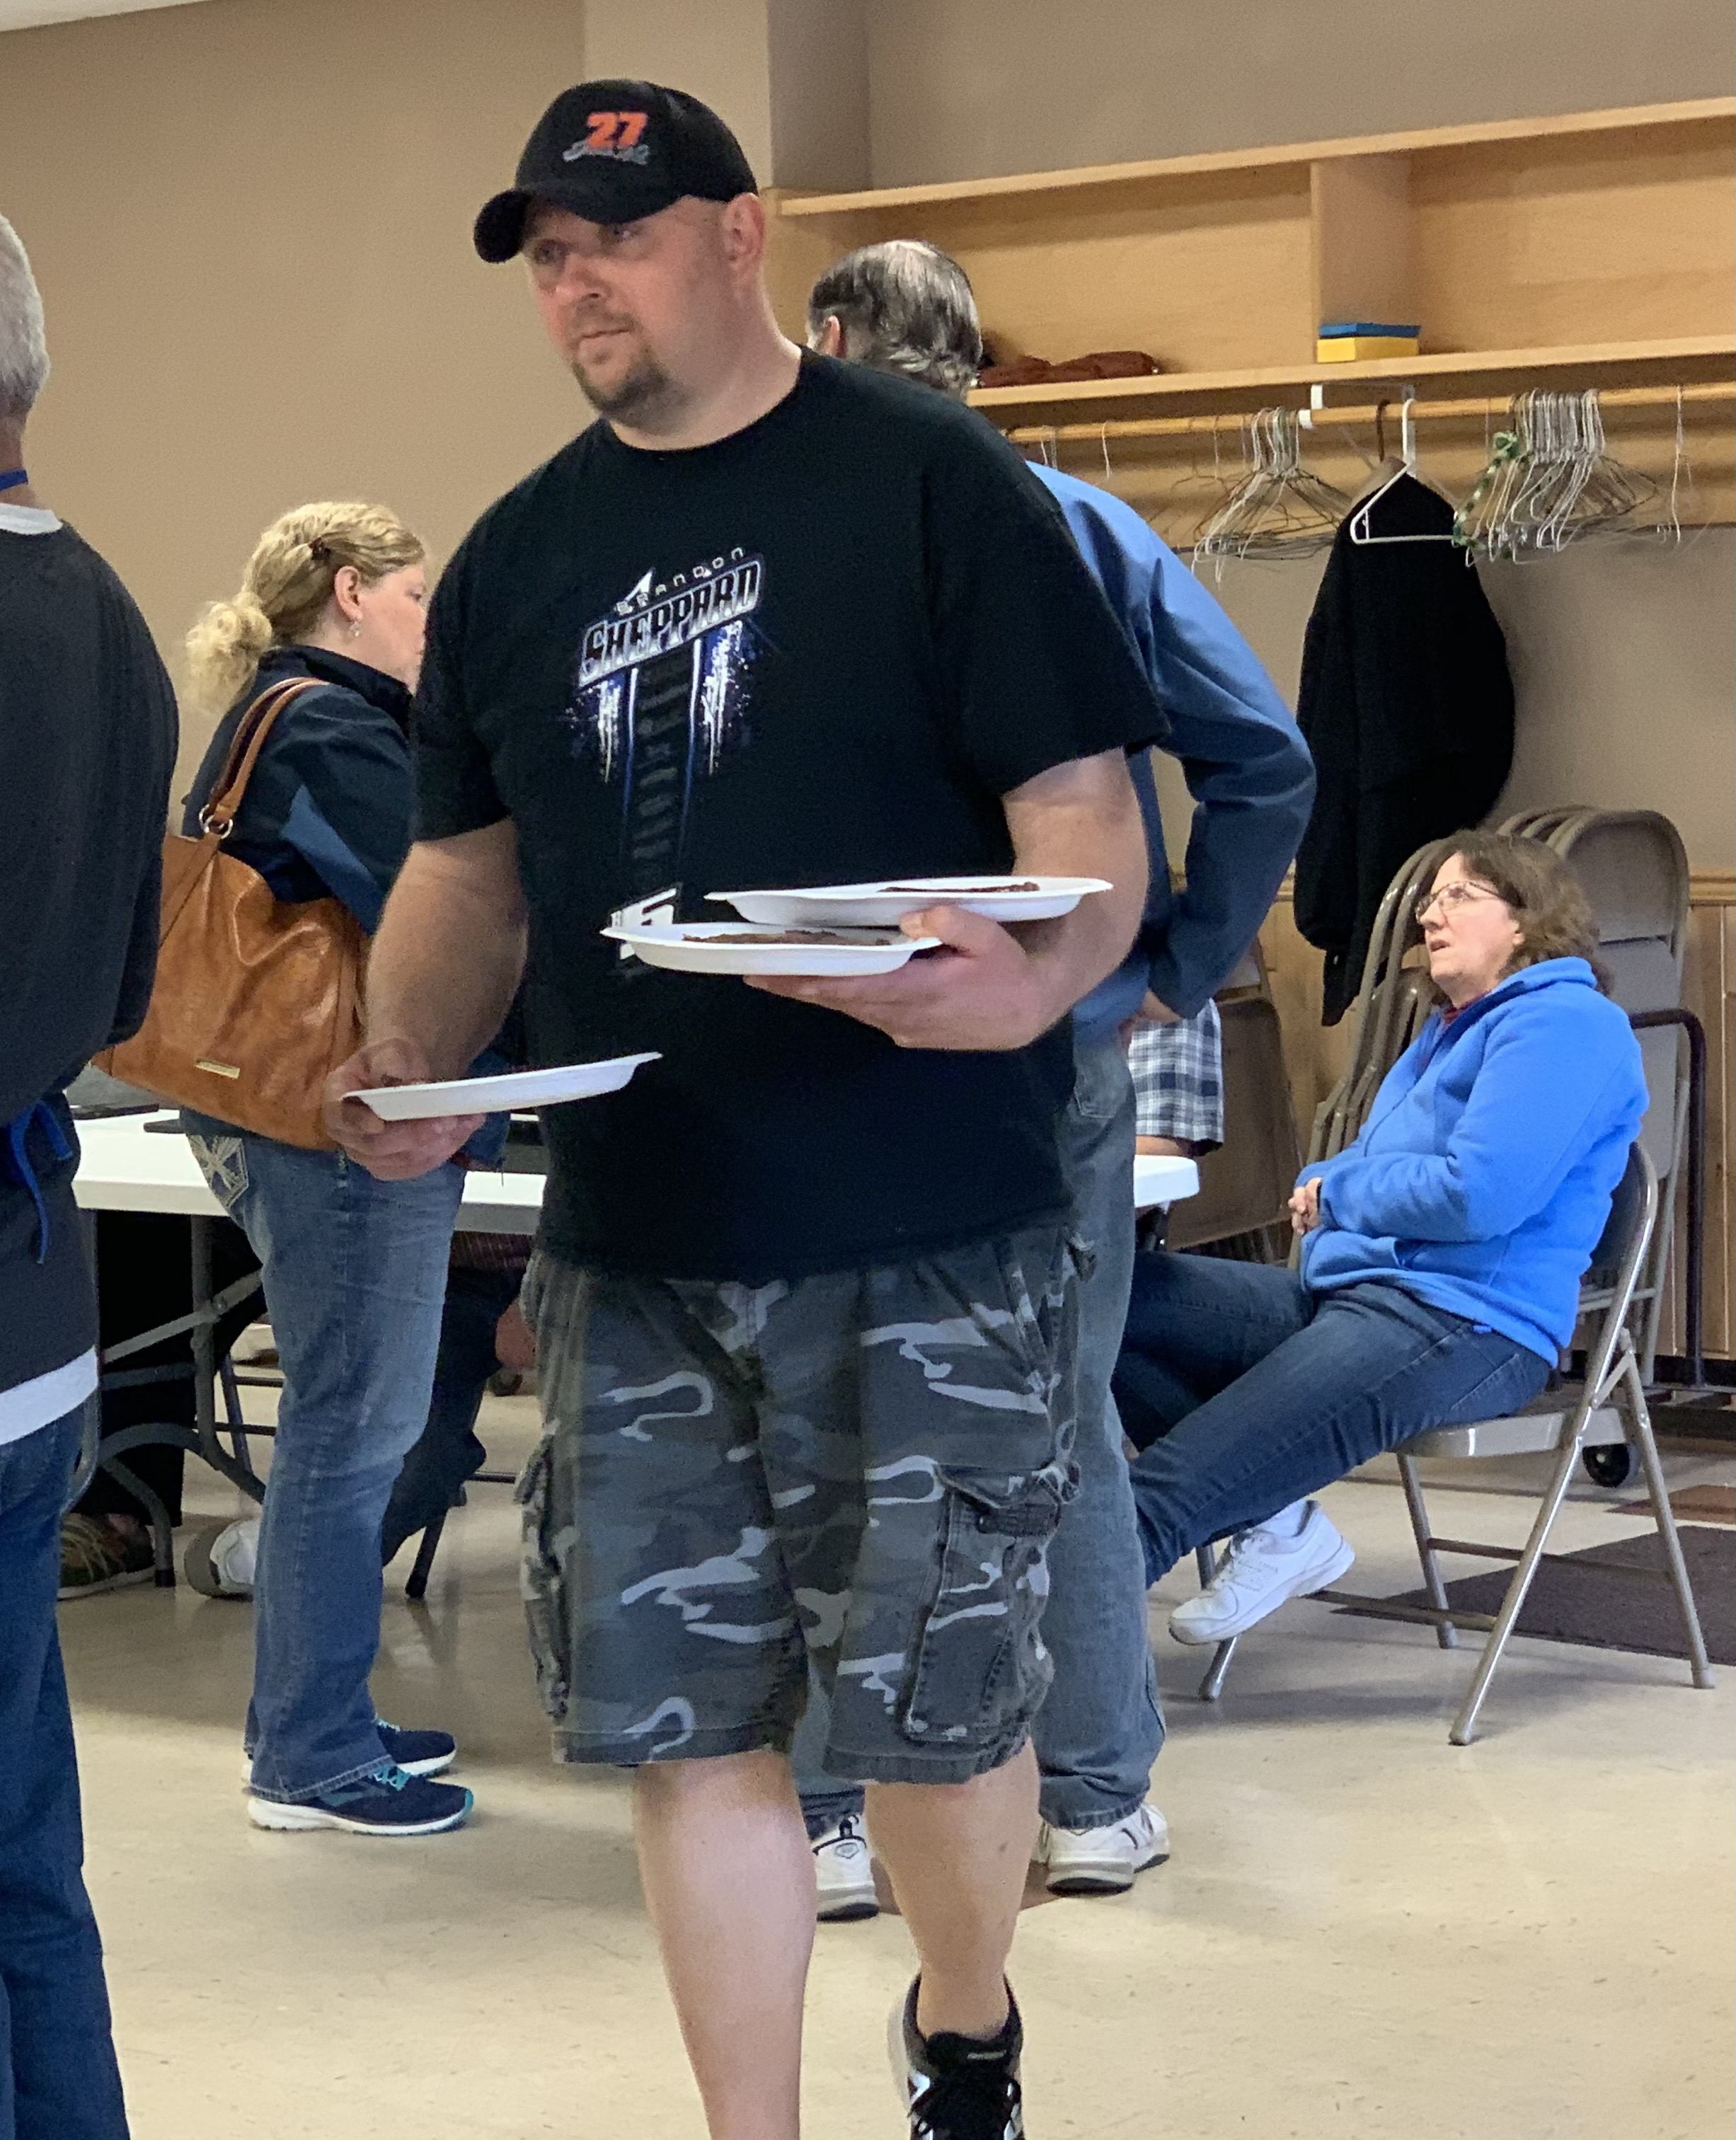 Lions Club Vice President Steve Reinert delivers steaks to hungry Tigerton residents on May 8. Reinert spent the whole evening grilling steaks and delivering them to visitors.Luke Reimer   NEW Media